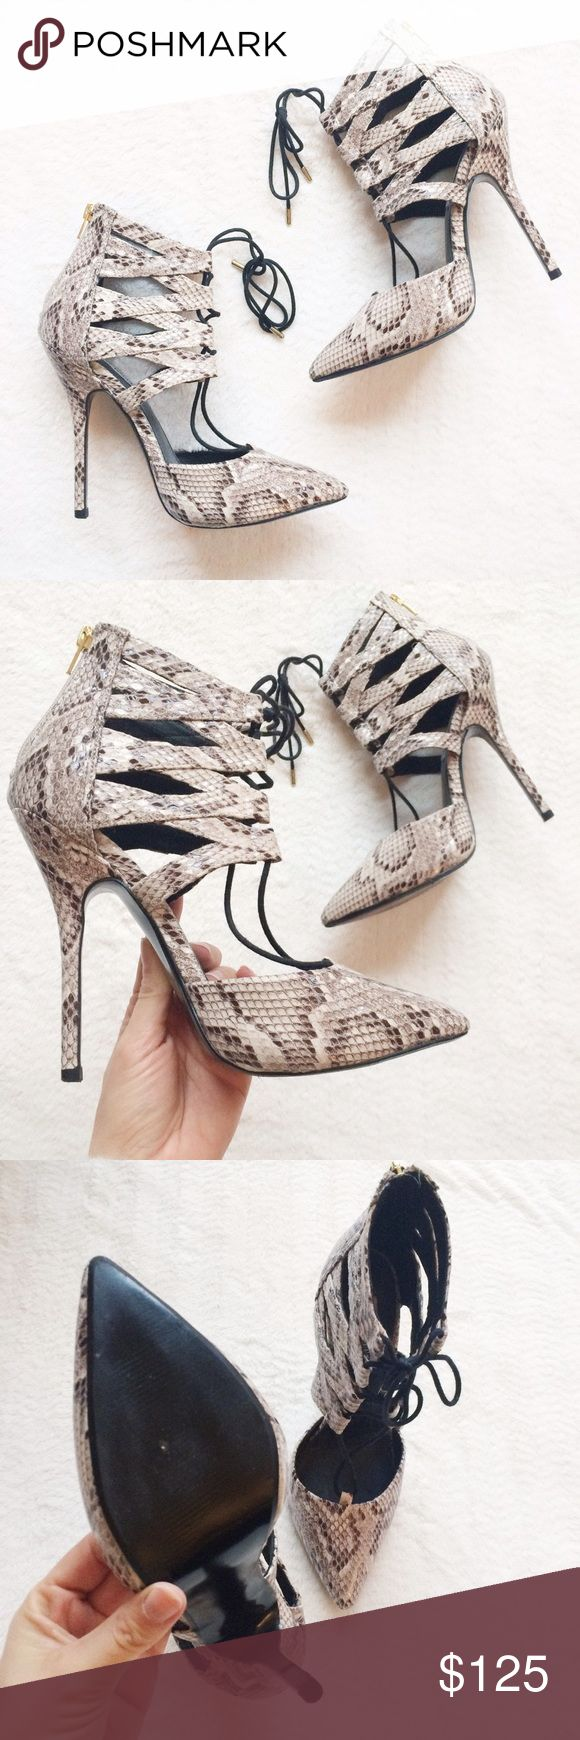 Steve Madden Snakeskin Lace Up Pump Only worn once! Still in perfect condition!! Can ship same day as purchase. Steve Madden Shoes Heels